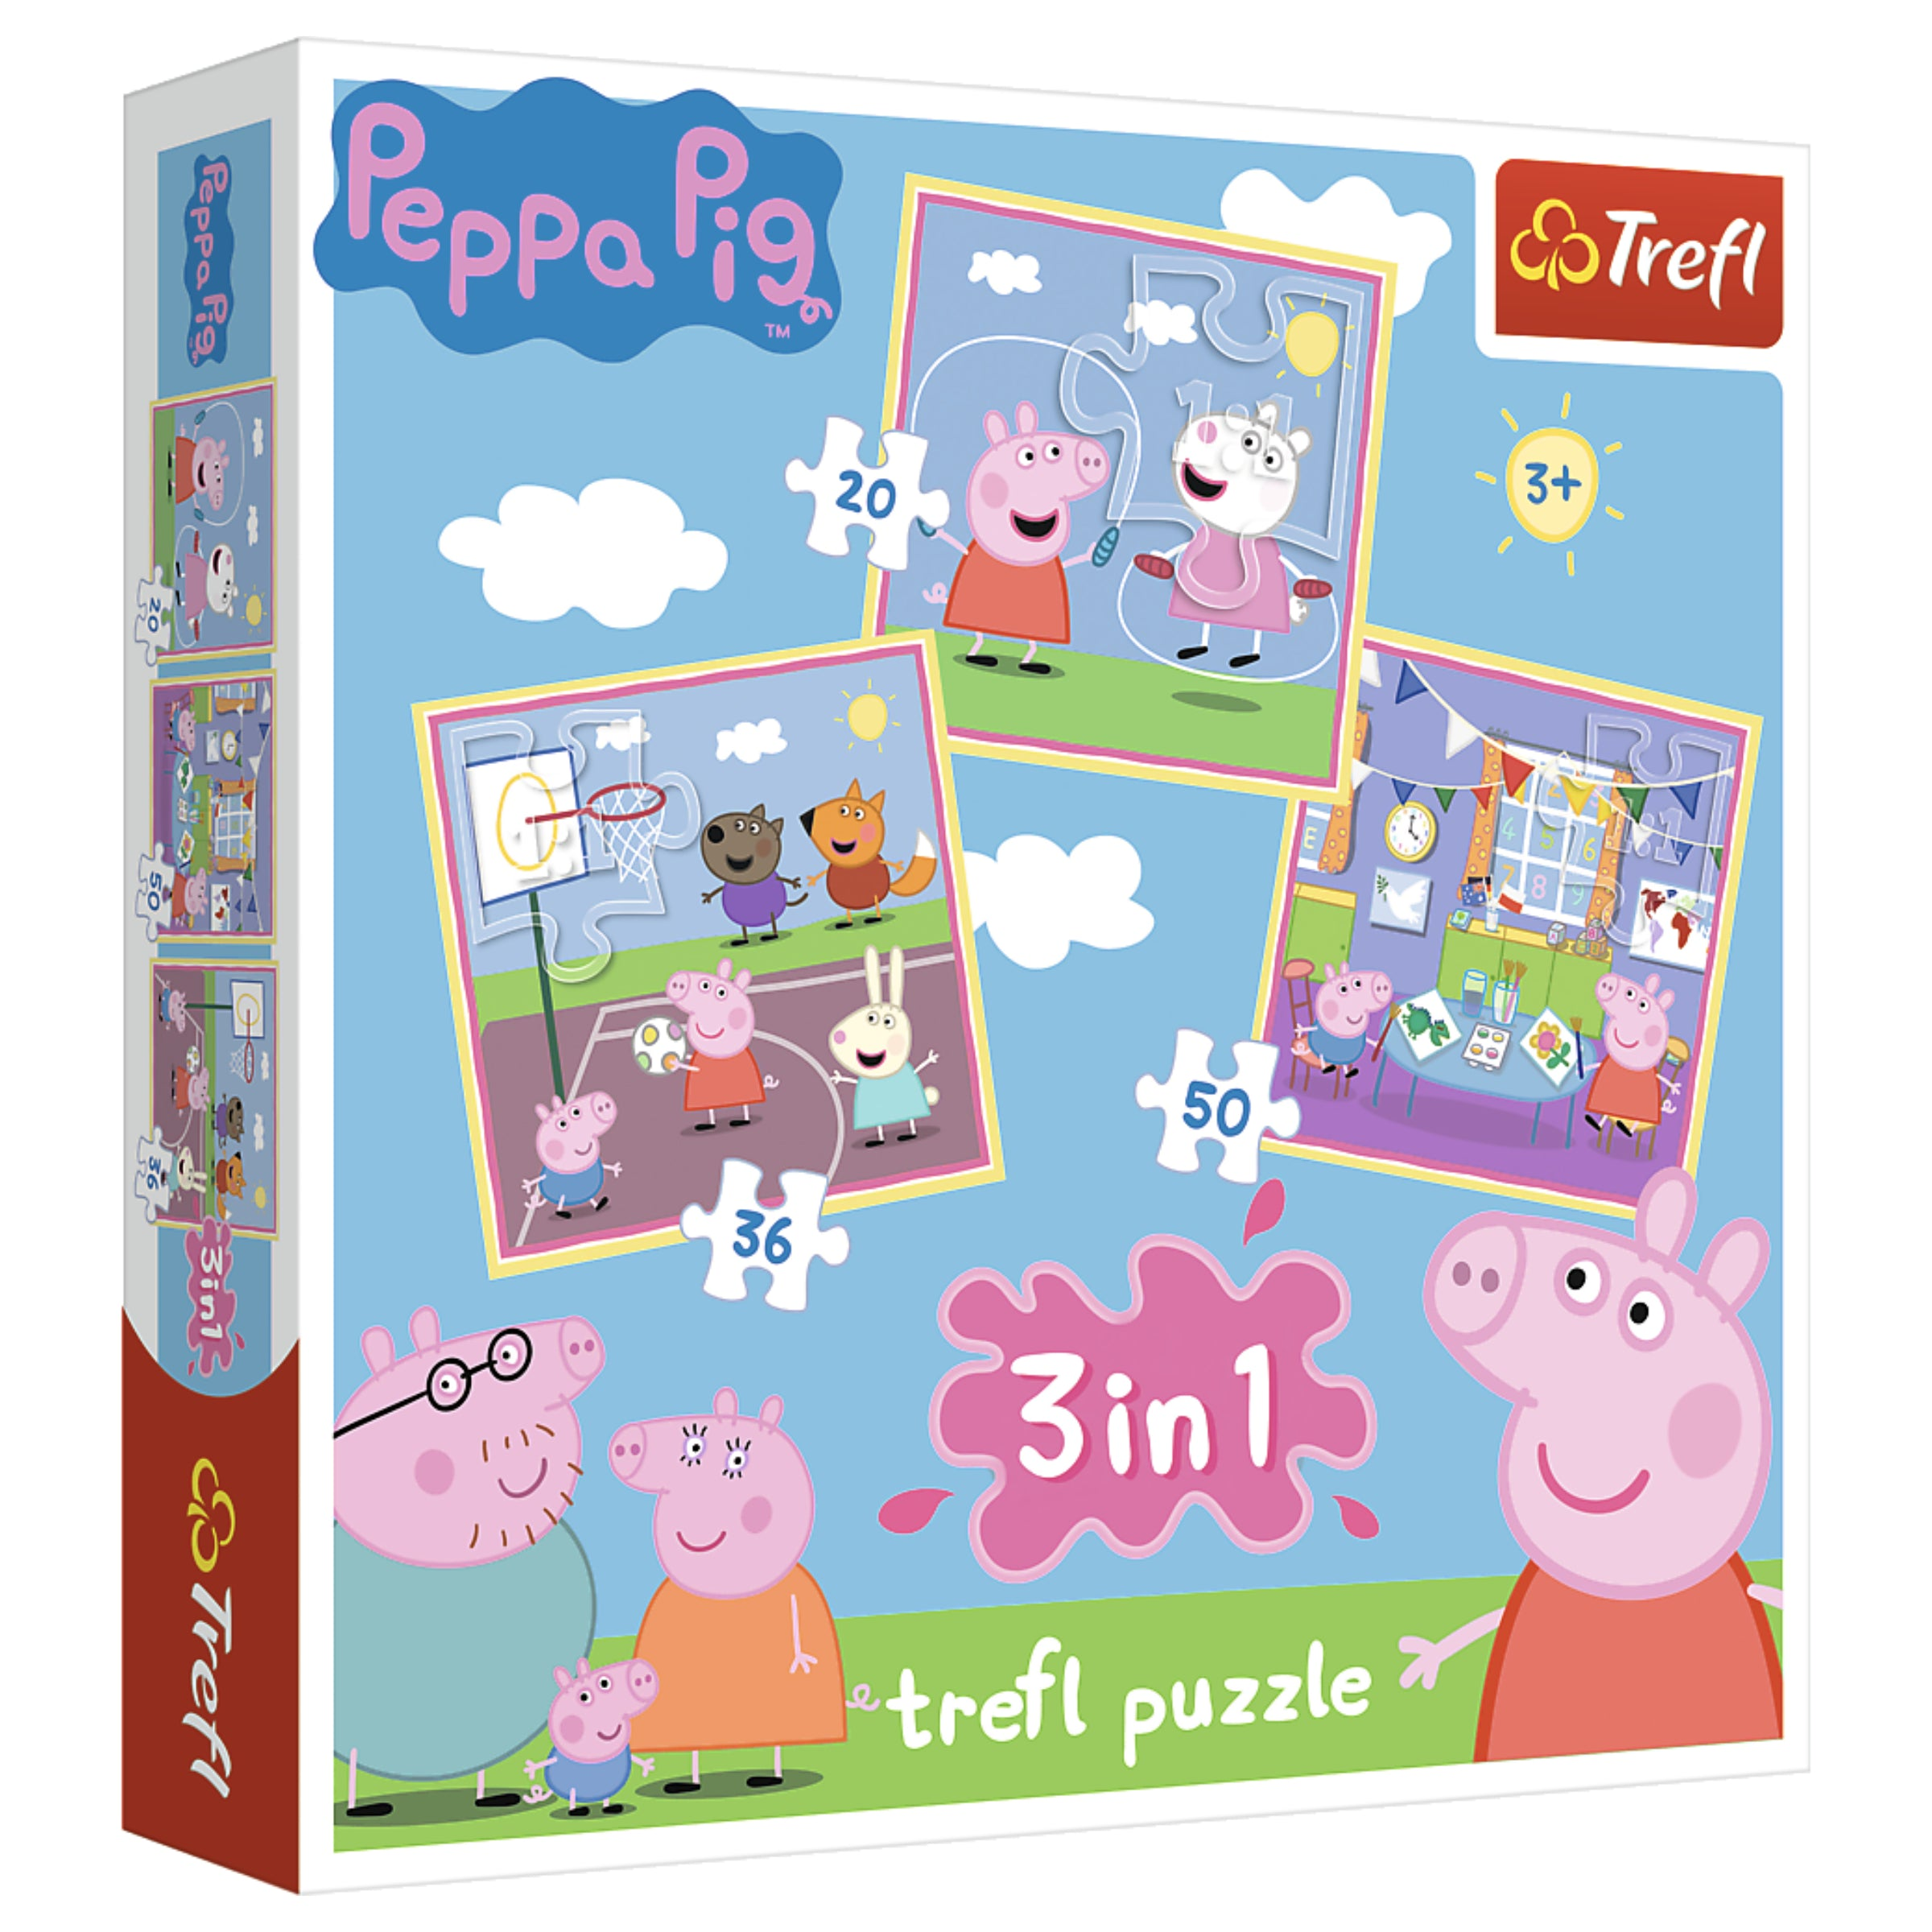 Peppa Pig - 3 in 1 Jigsaw